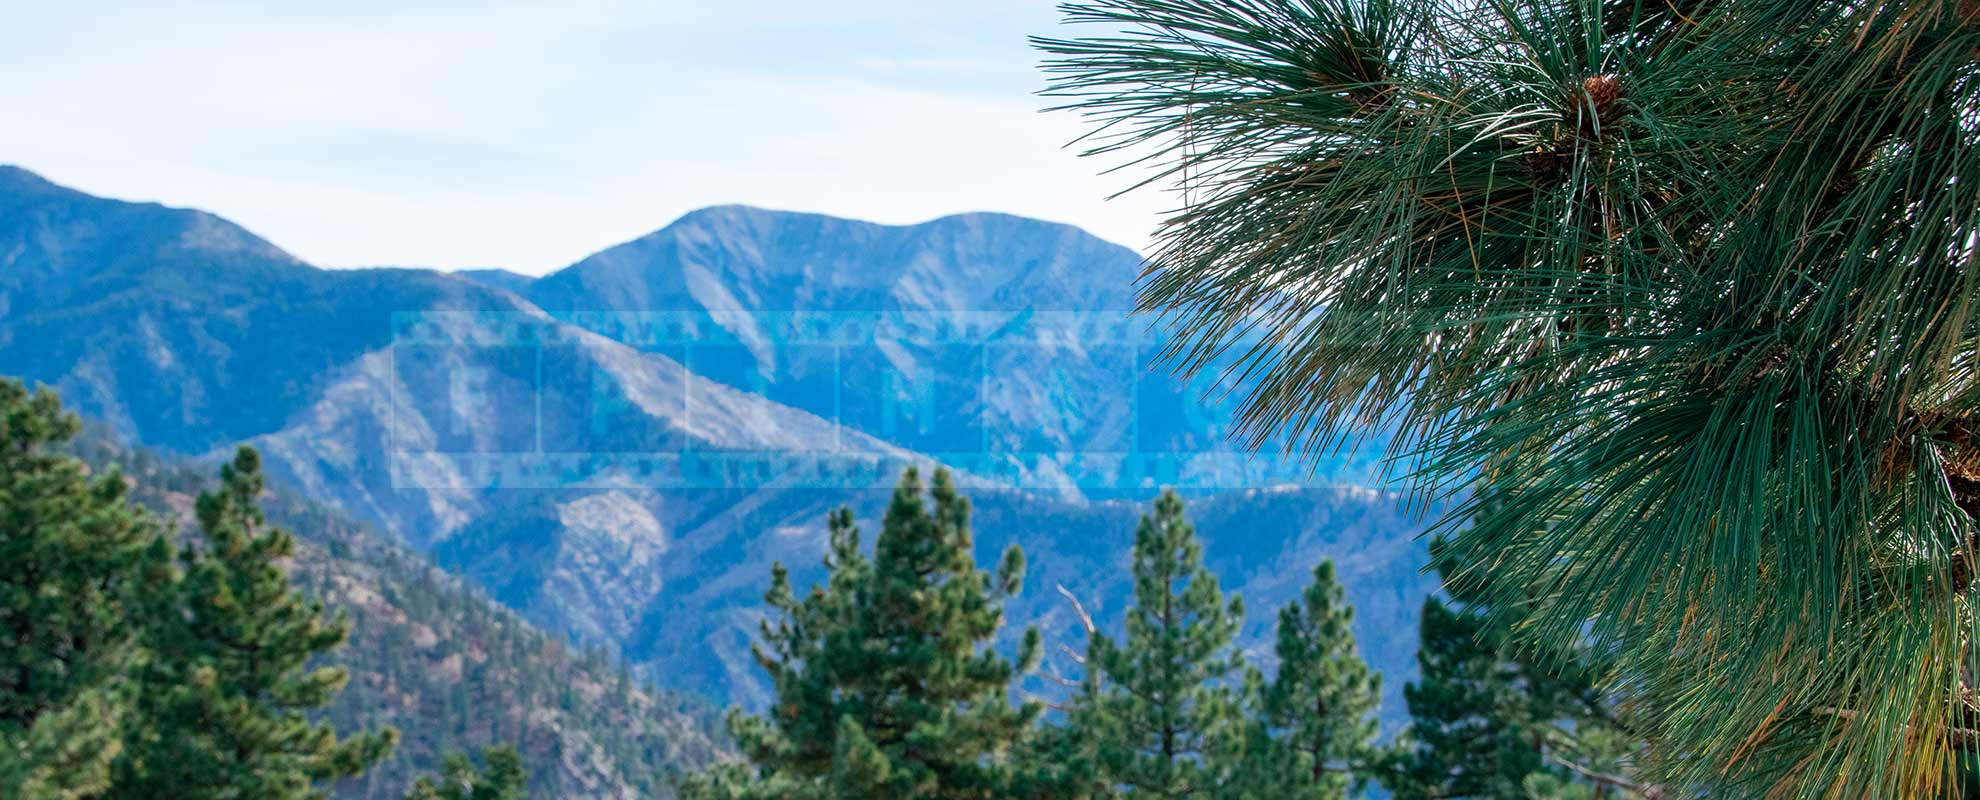 Mountain ridges and pine trees in Angeles National forest